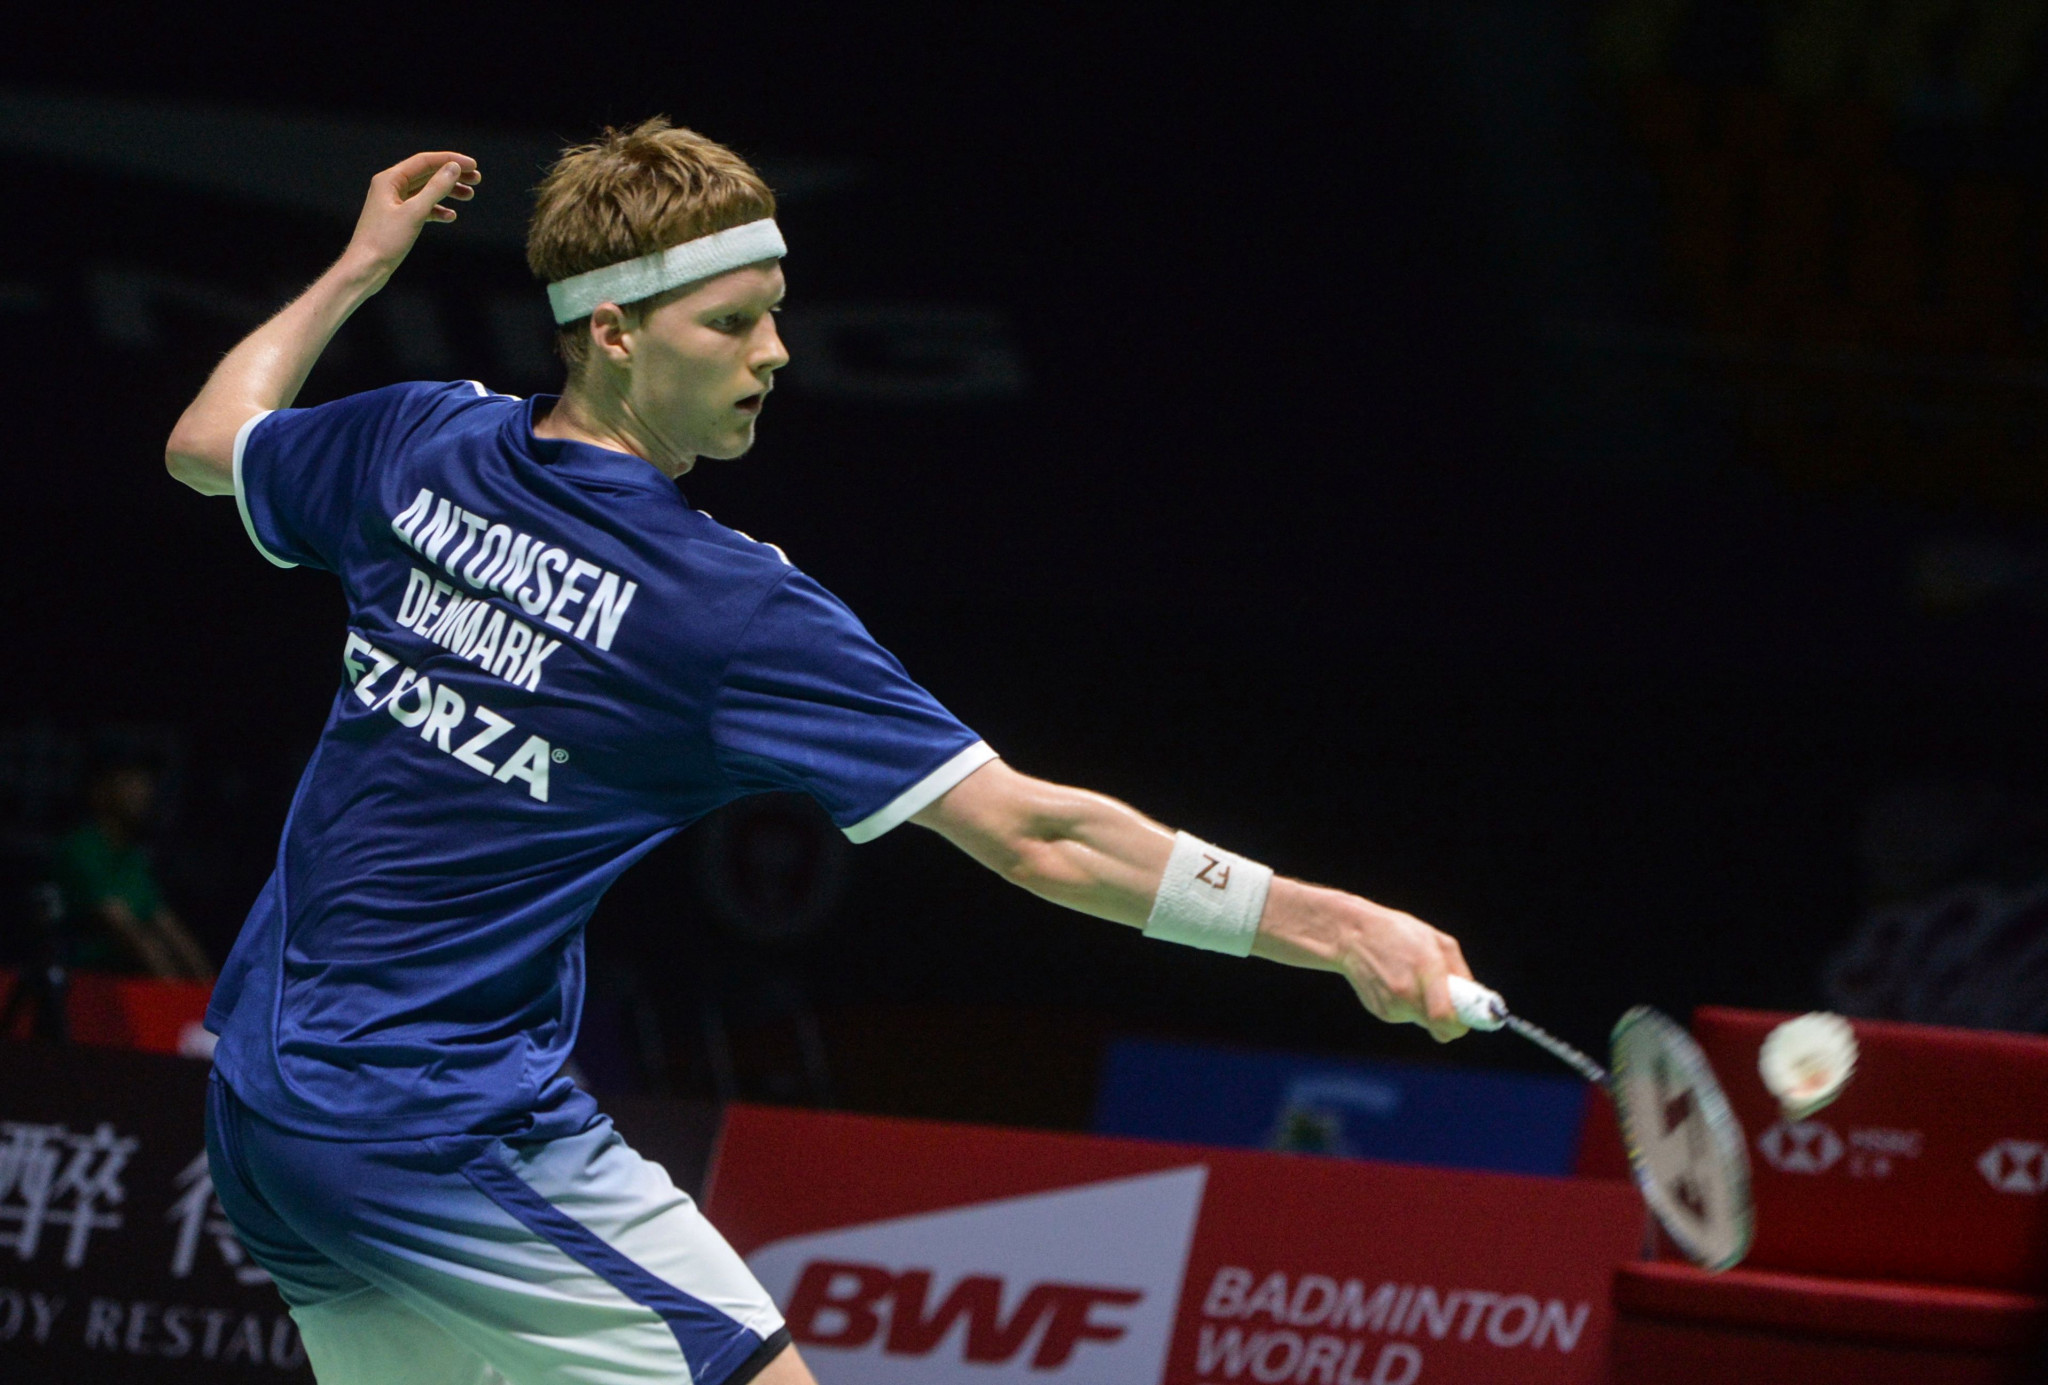 Anders Antonsen of Denmark secured his first major title as he stunned top seed and reigning world champion Kento Momota ©Getty Images